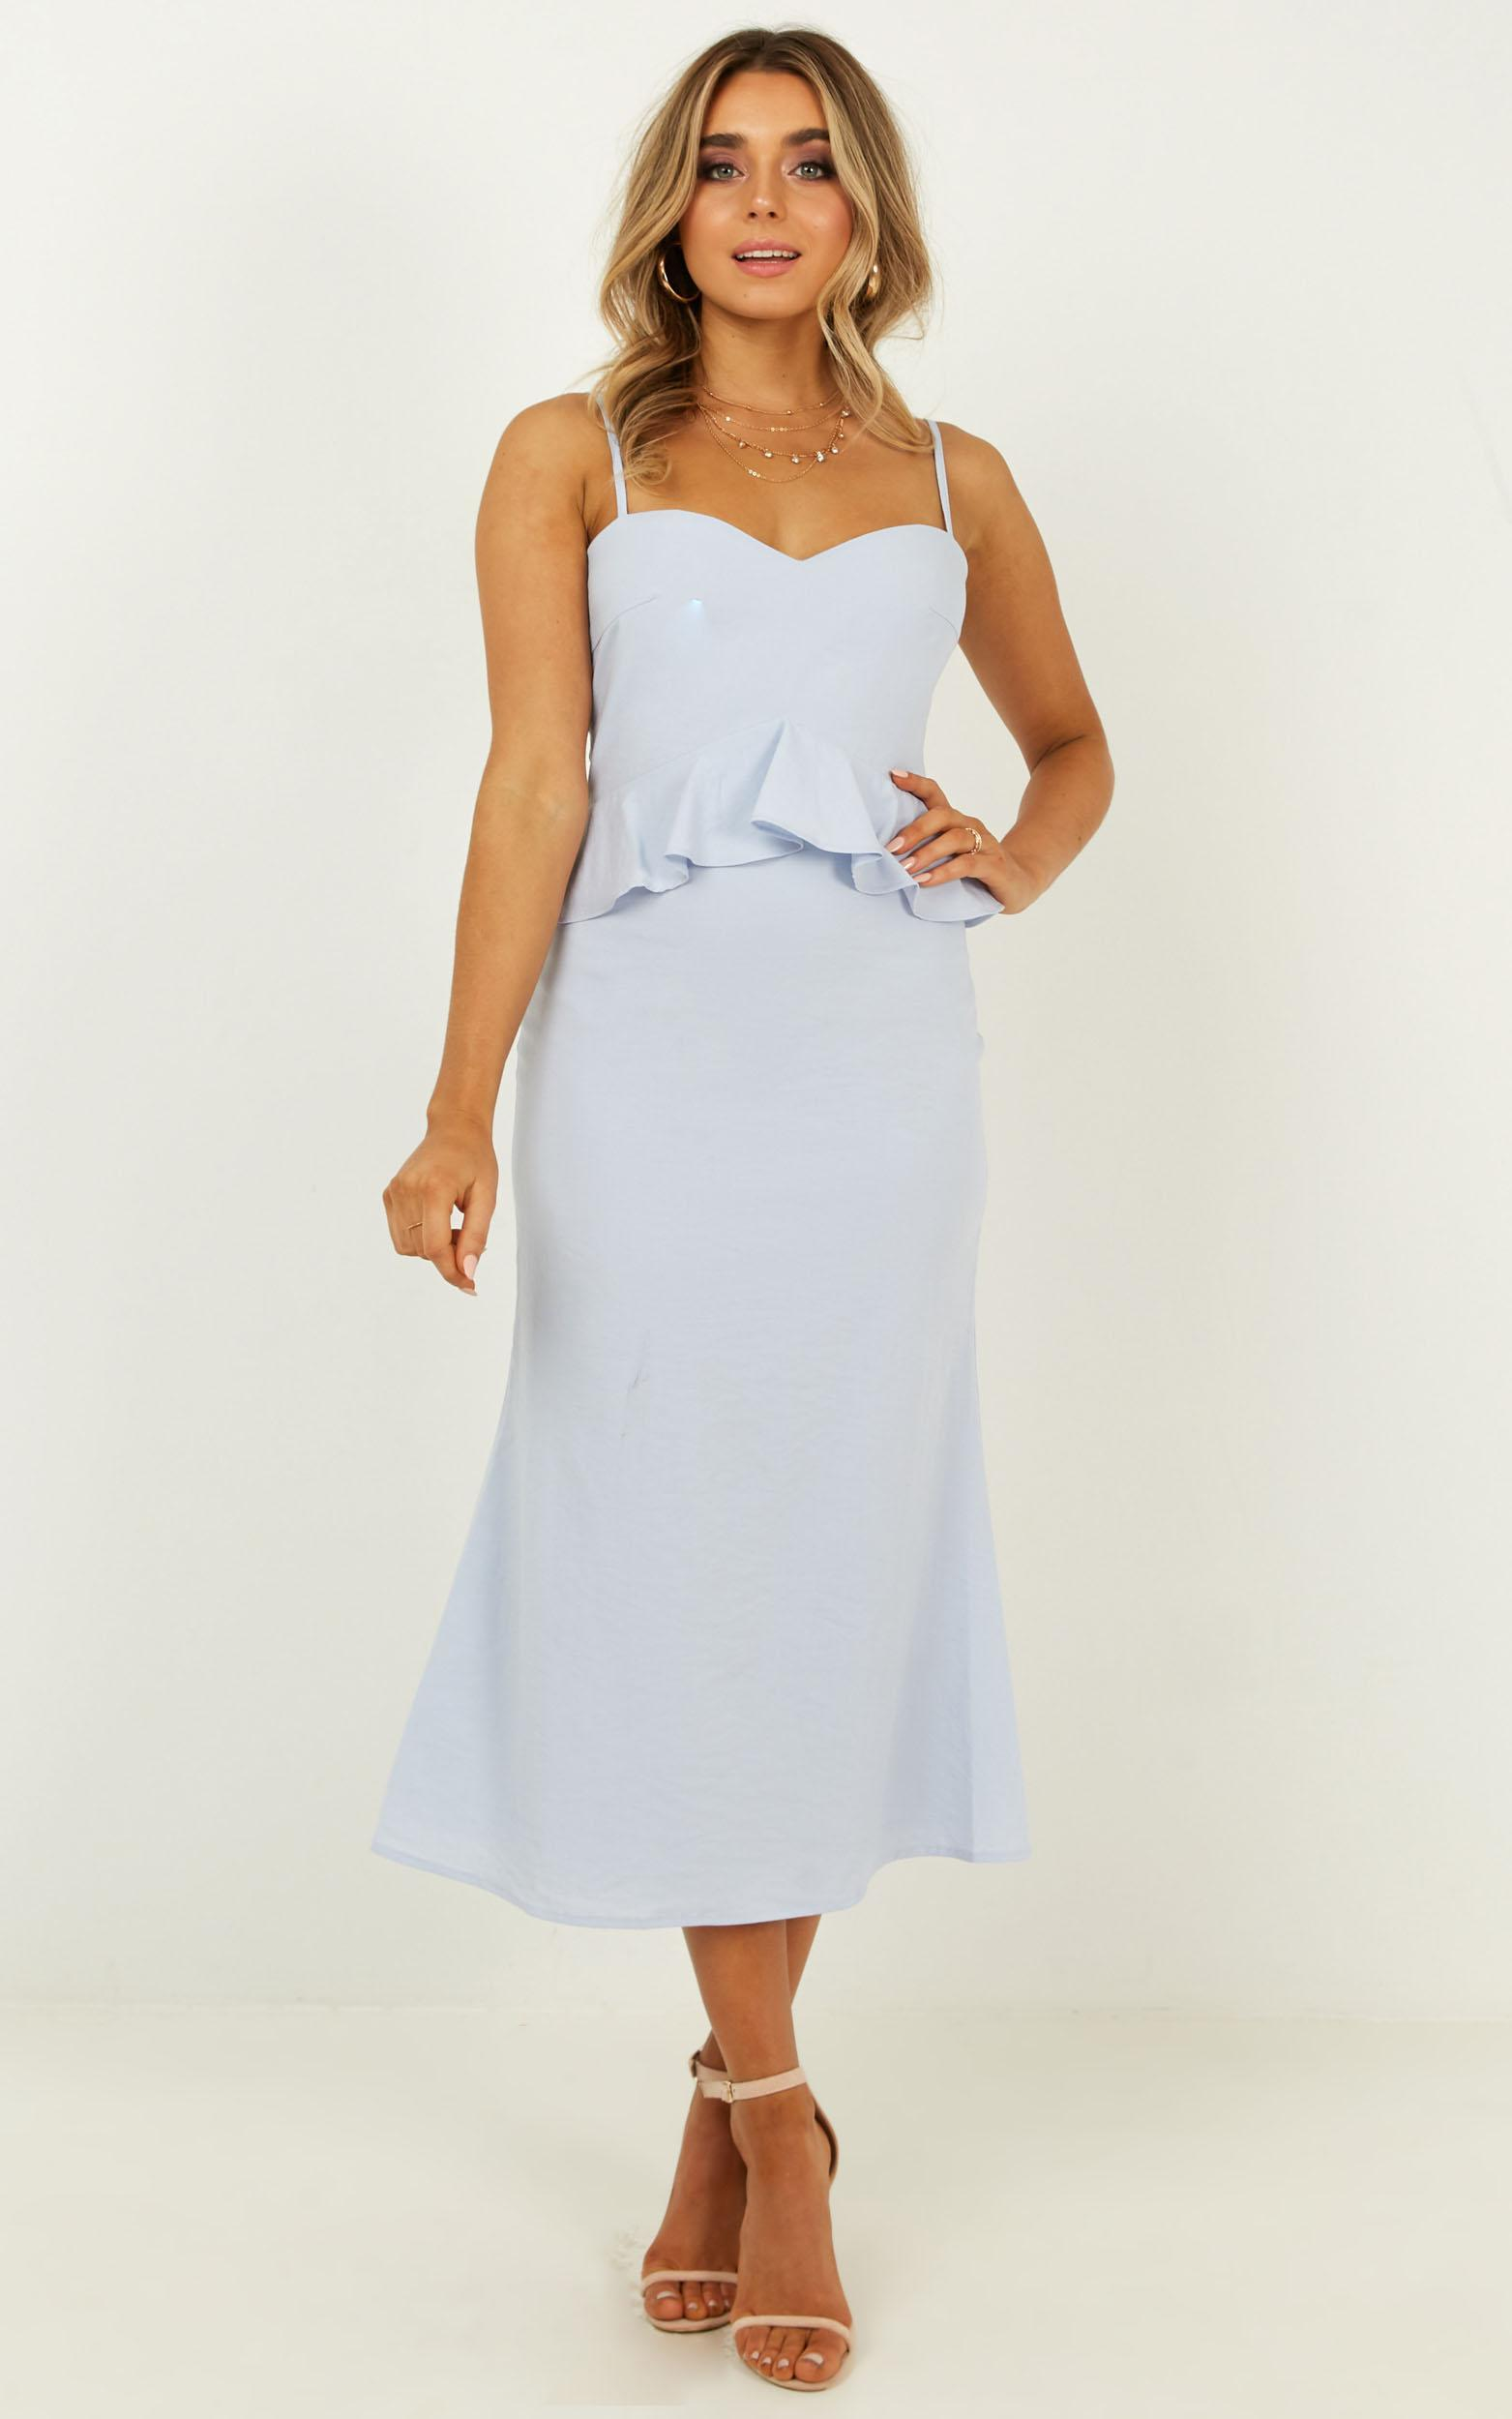 Tuesday blues dress in pale blue - 20 (XXXXL), Blue, hi-res image number null